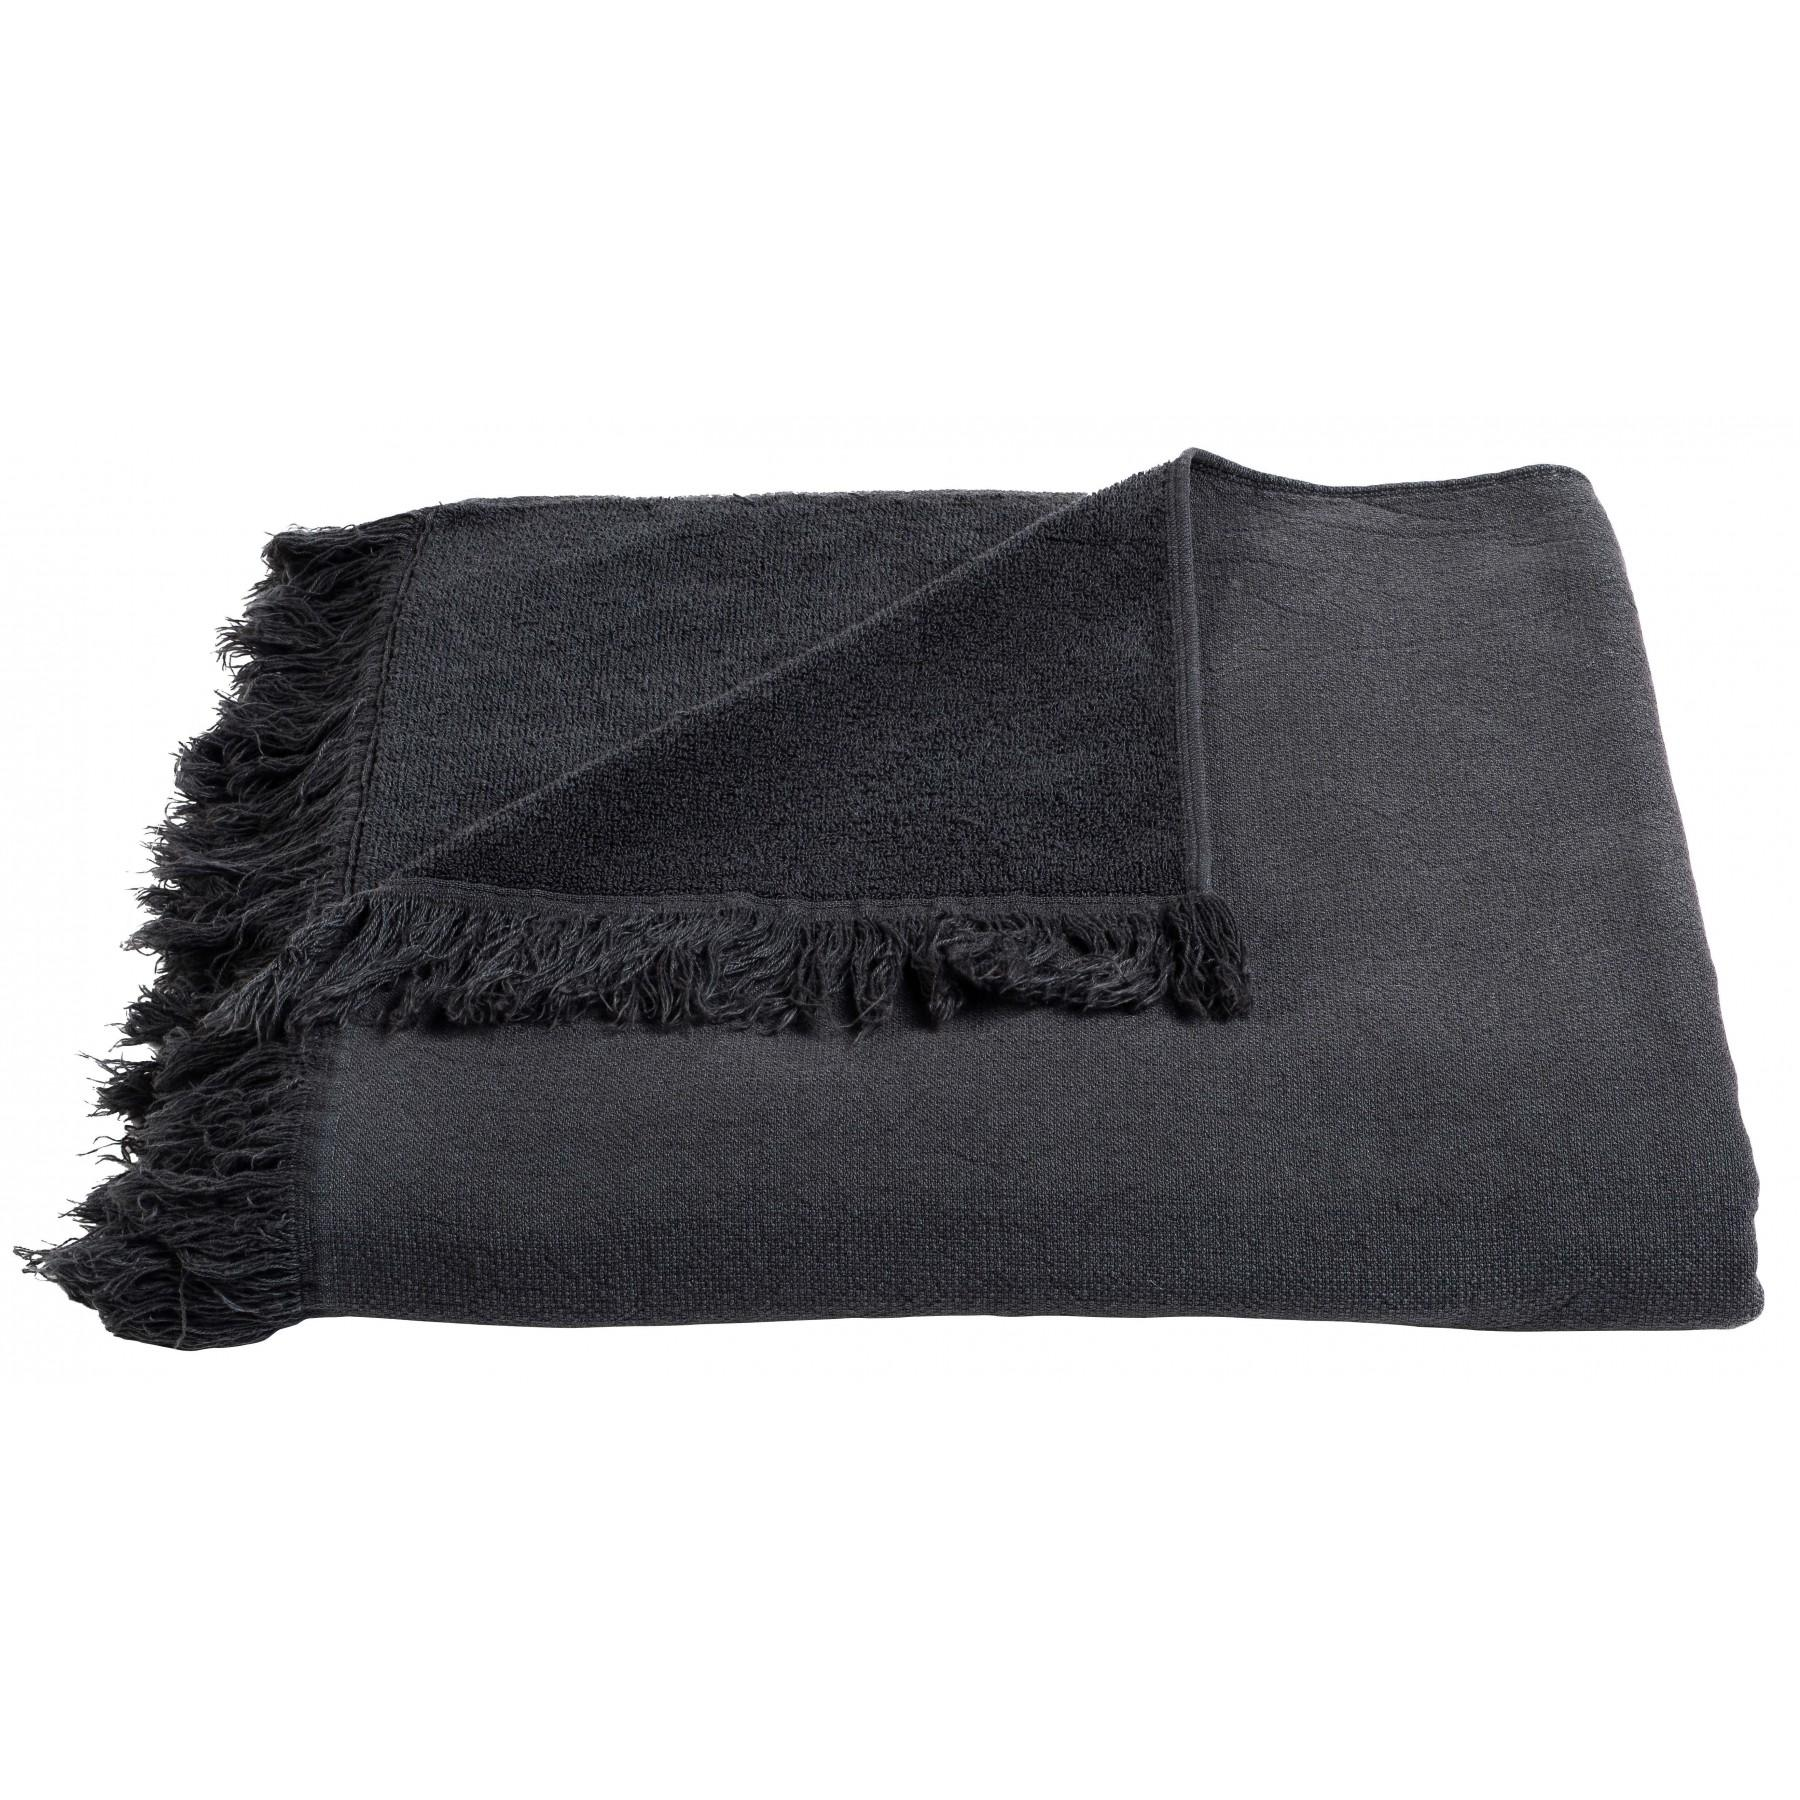 BATH TOWEL LUNA CAVIAR 70